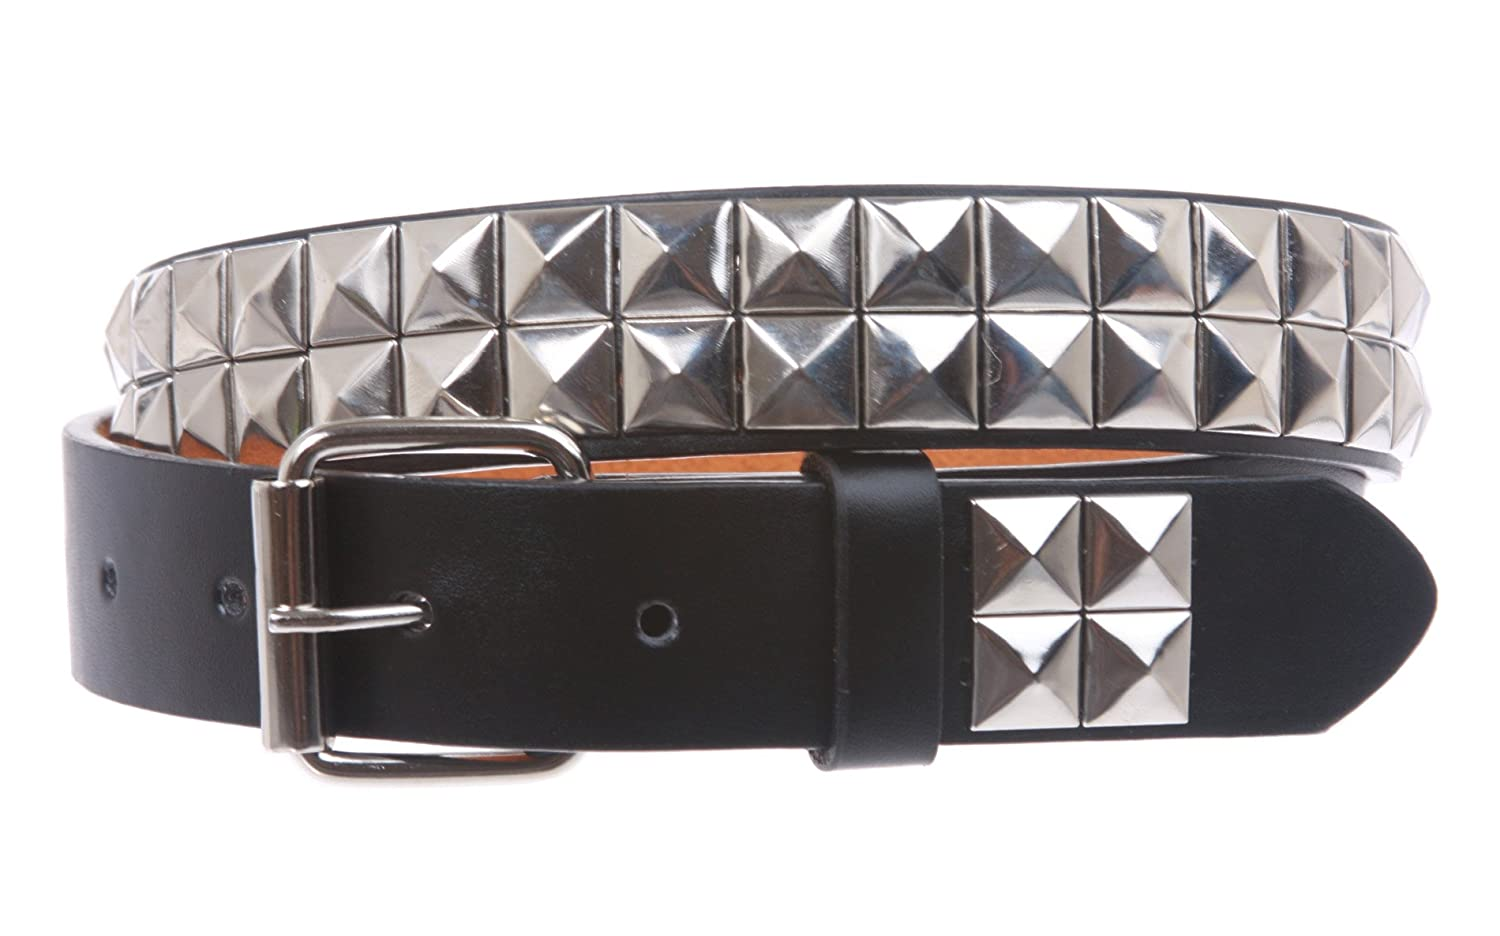 Kids 1 Snap On Punk Rock Studded Leather Belt, Black/Silver | S - 20 Black/Silver | S - 20 Beltiscool B67:011H:A04N